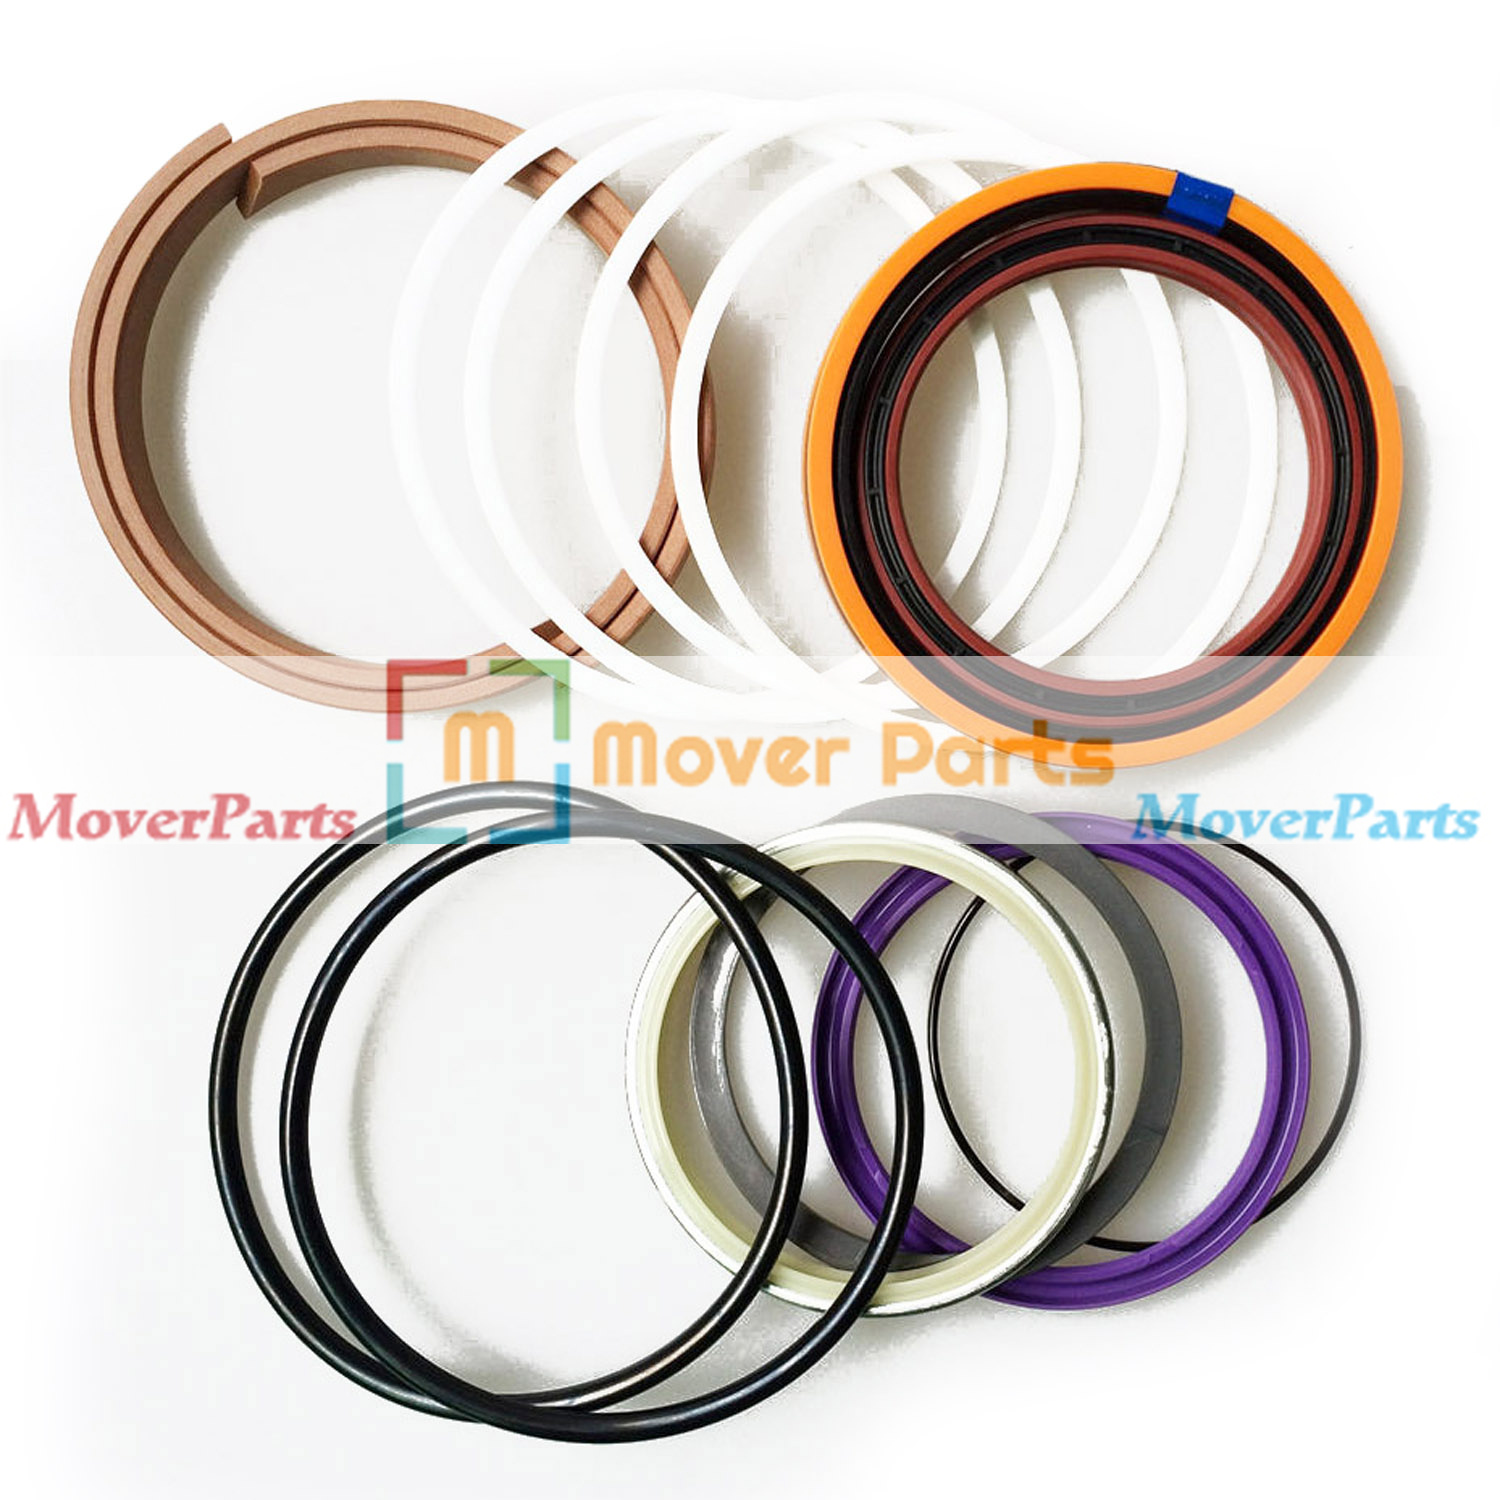 Arm Cylinder Seal Kit for Caterpillar Excavator CAT E110B E120B